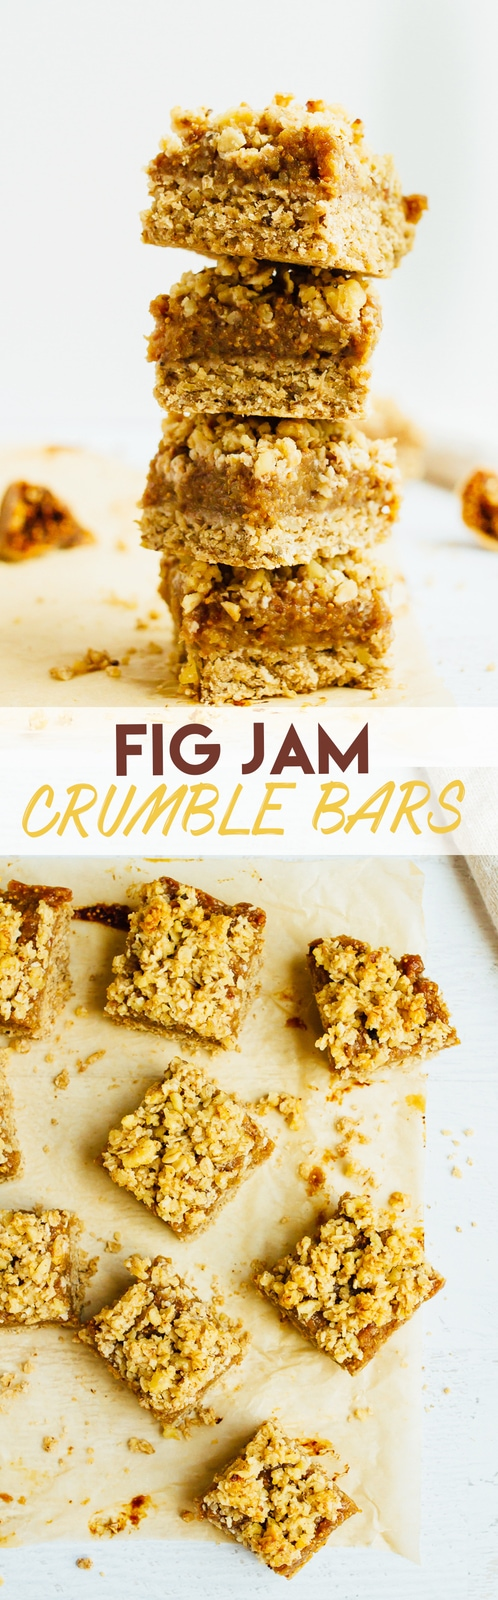 Wholesome Fig Jam Crumble Bars you can feel good about enjoying for breakfast, a snack or dessert. They're loaded with healthy fats and naturally sweetened. Recipe from The Laura Lea Balanced Cookbook.